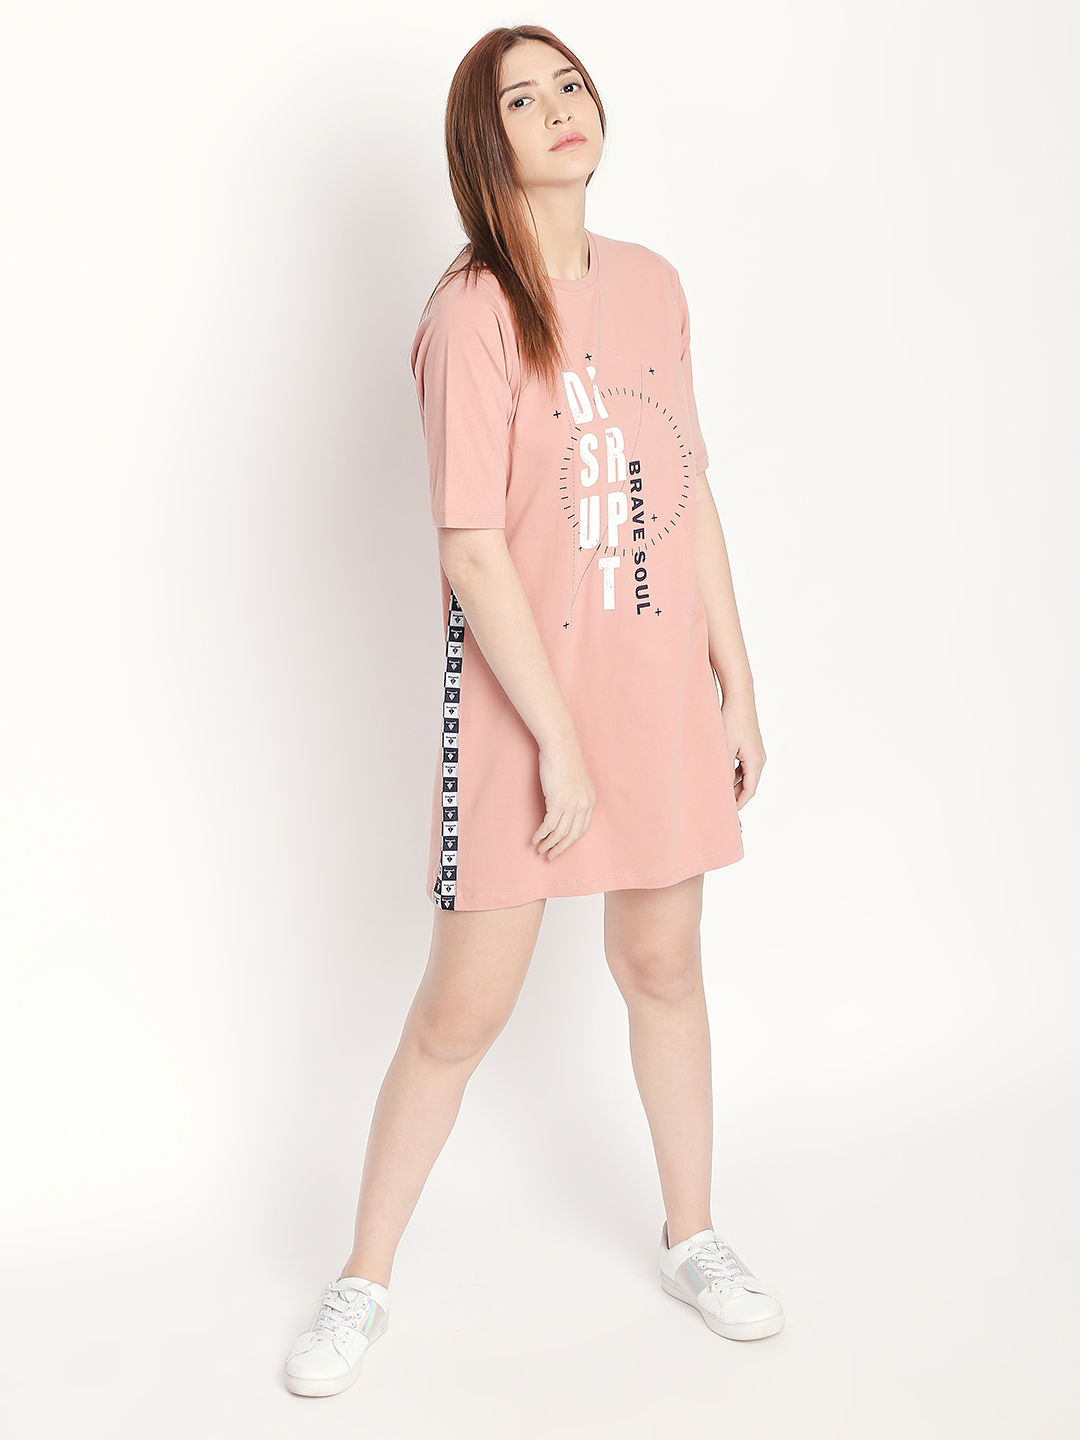 Disrupt Rose Pink Elbow Cotton Dress For Women'S